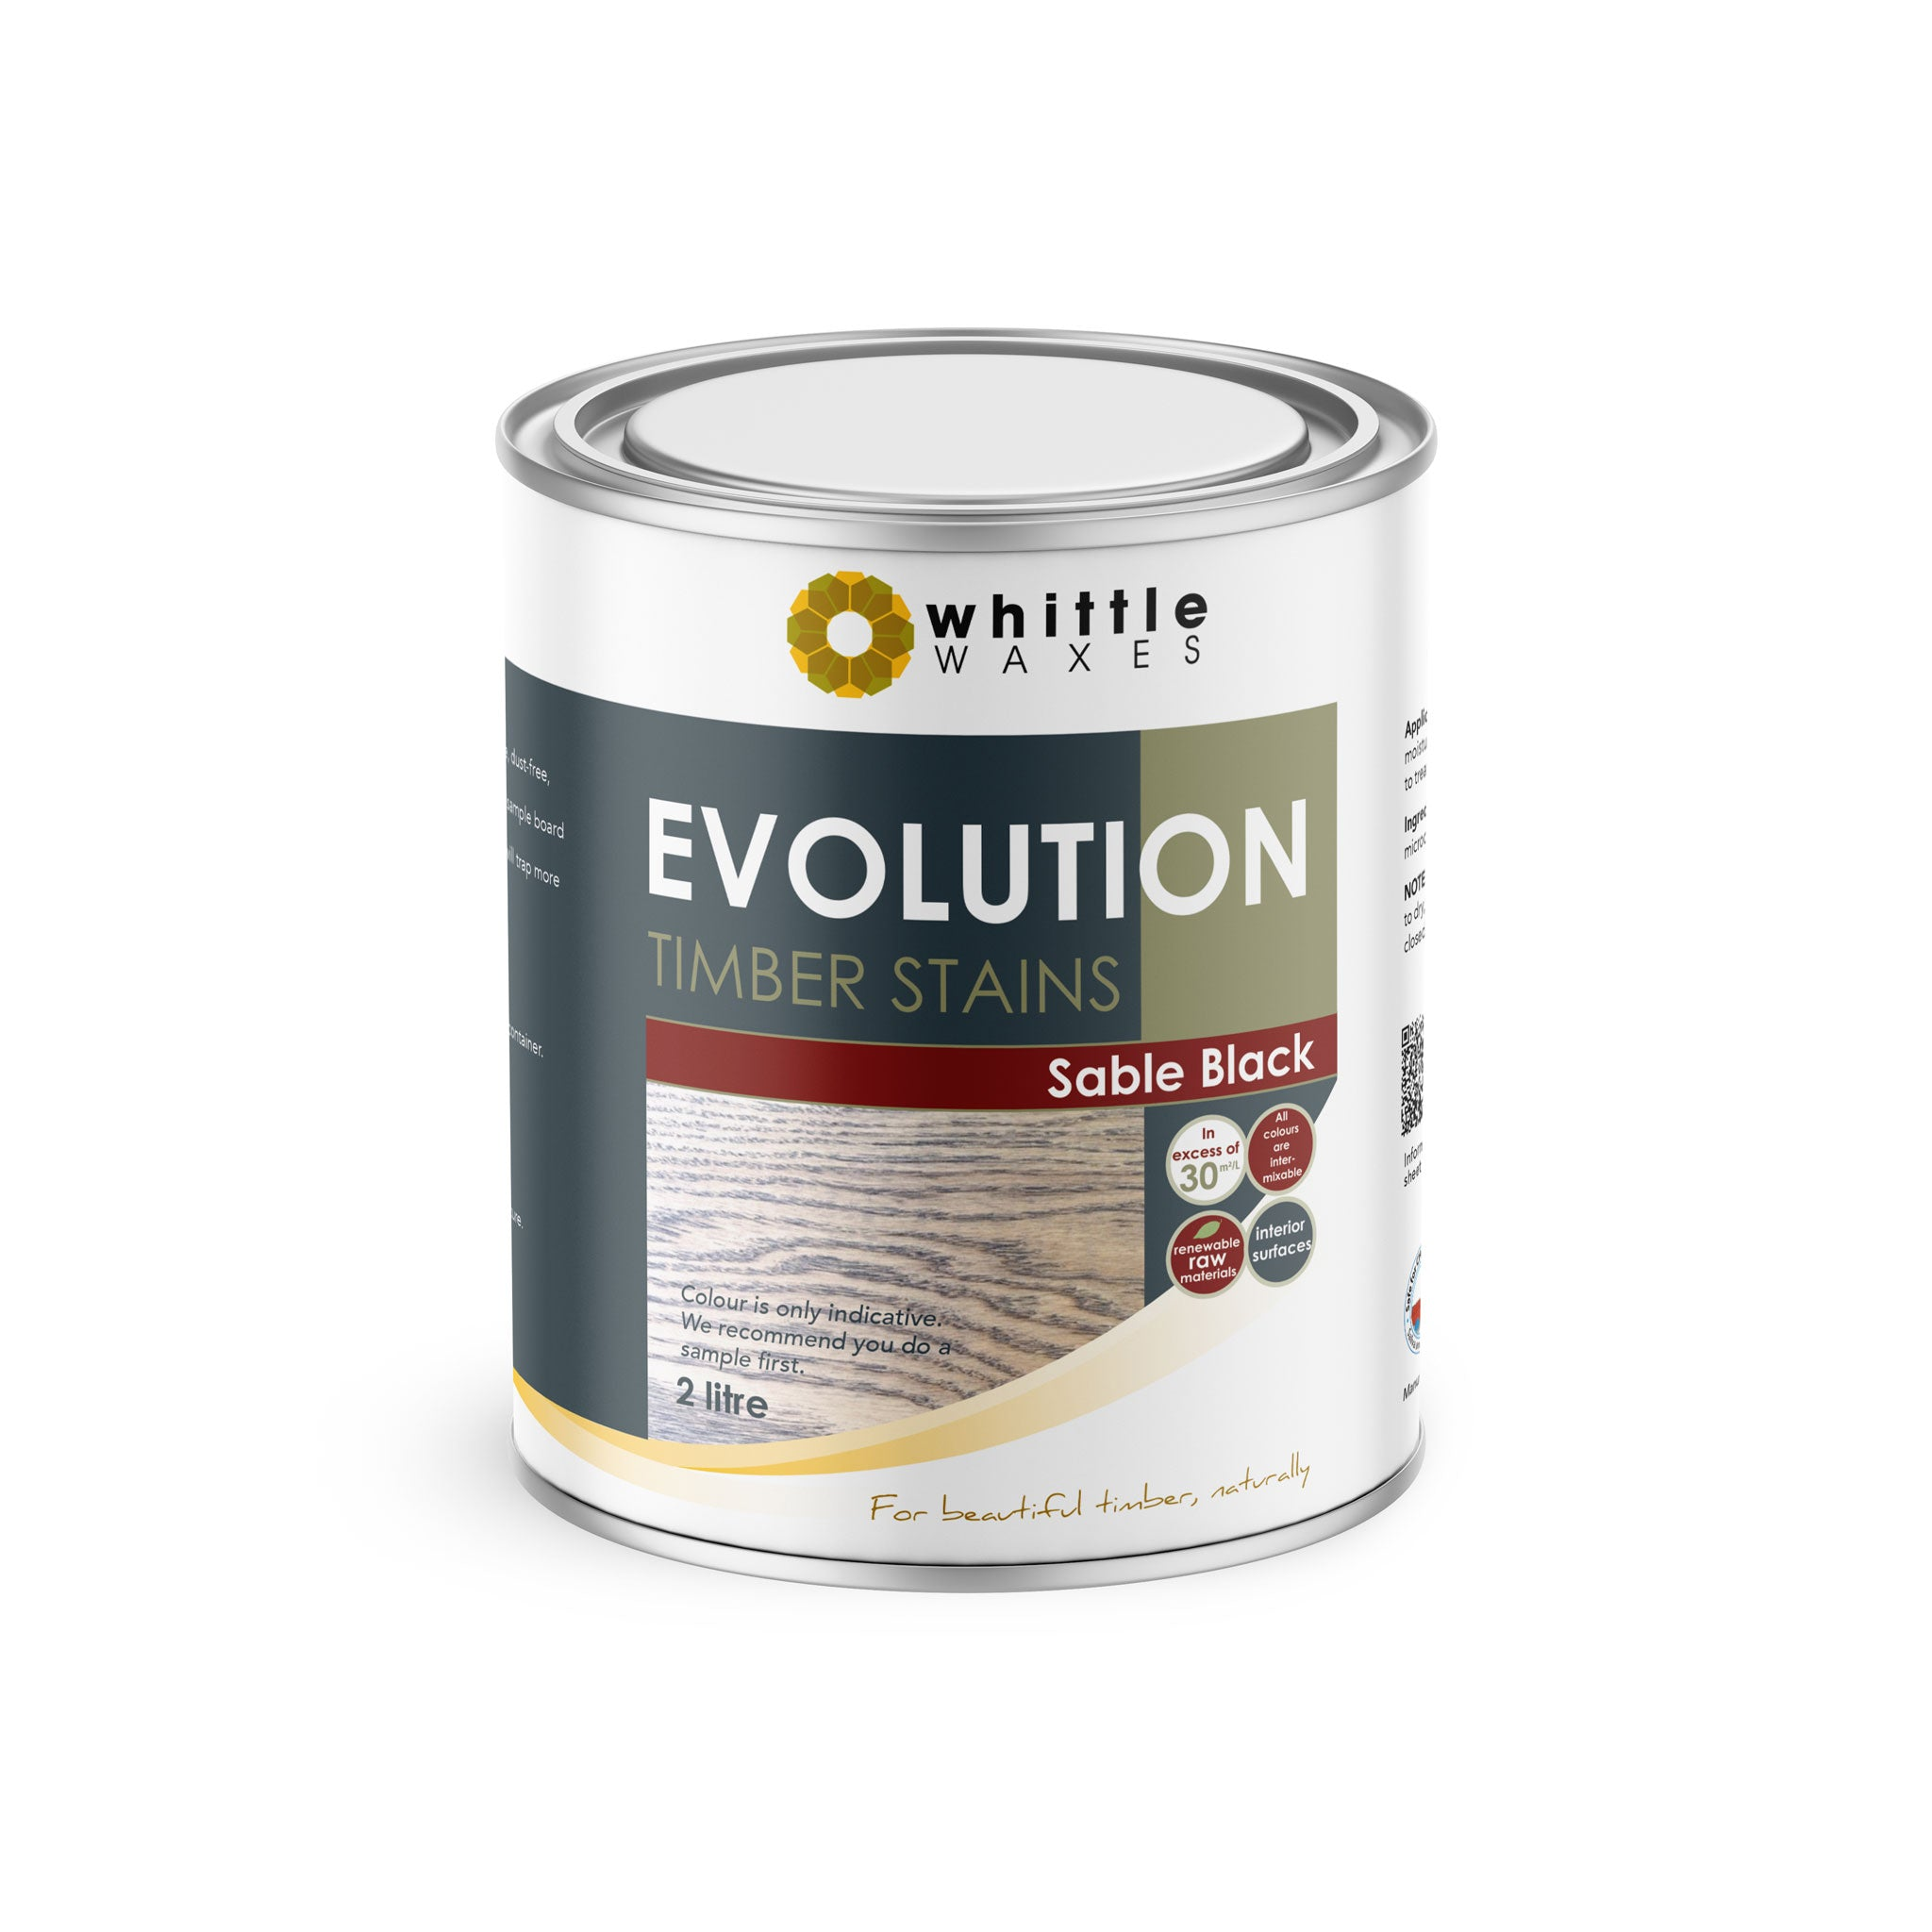 Whittle Waxes Evolution Colours (Sable Black) - quality timber stain - 2 Litre